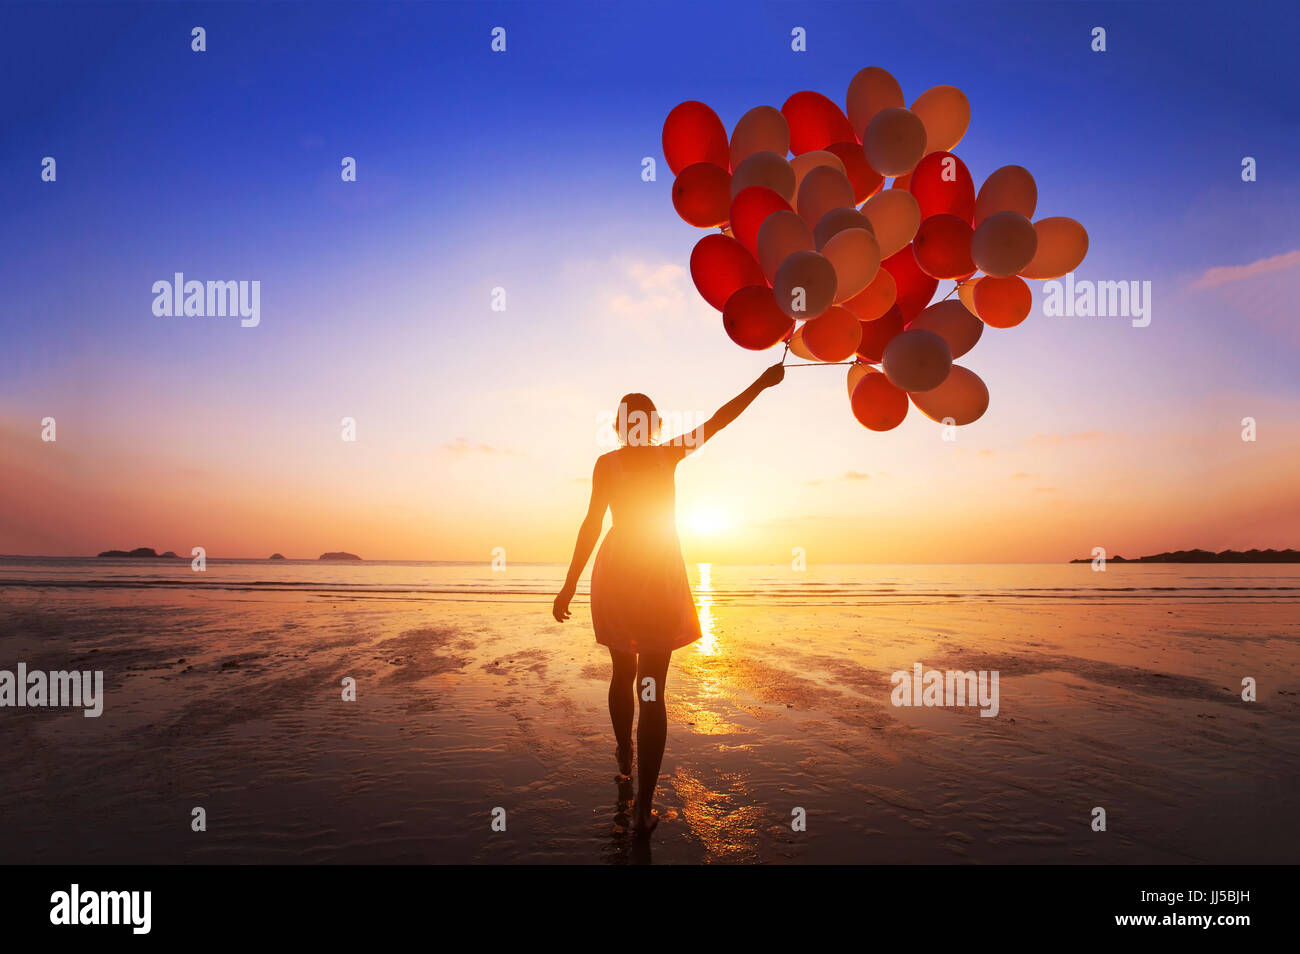 inspiration, joy and happiness concept, silhouette of woman with many flying balloons on the beach - Stock Image